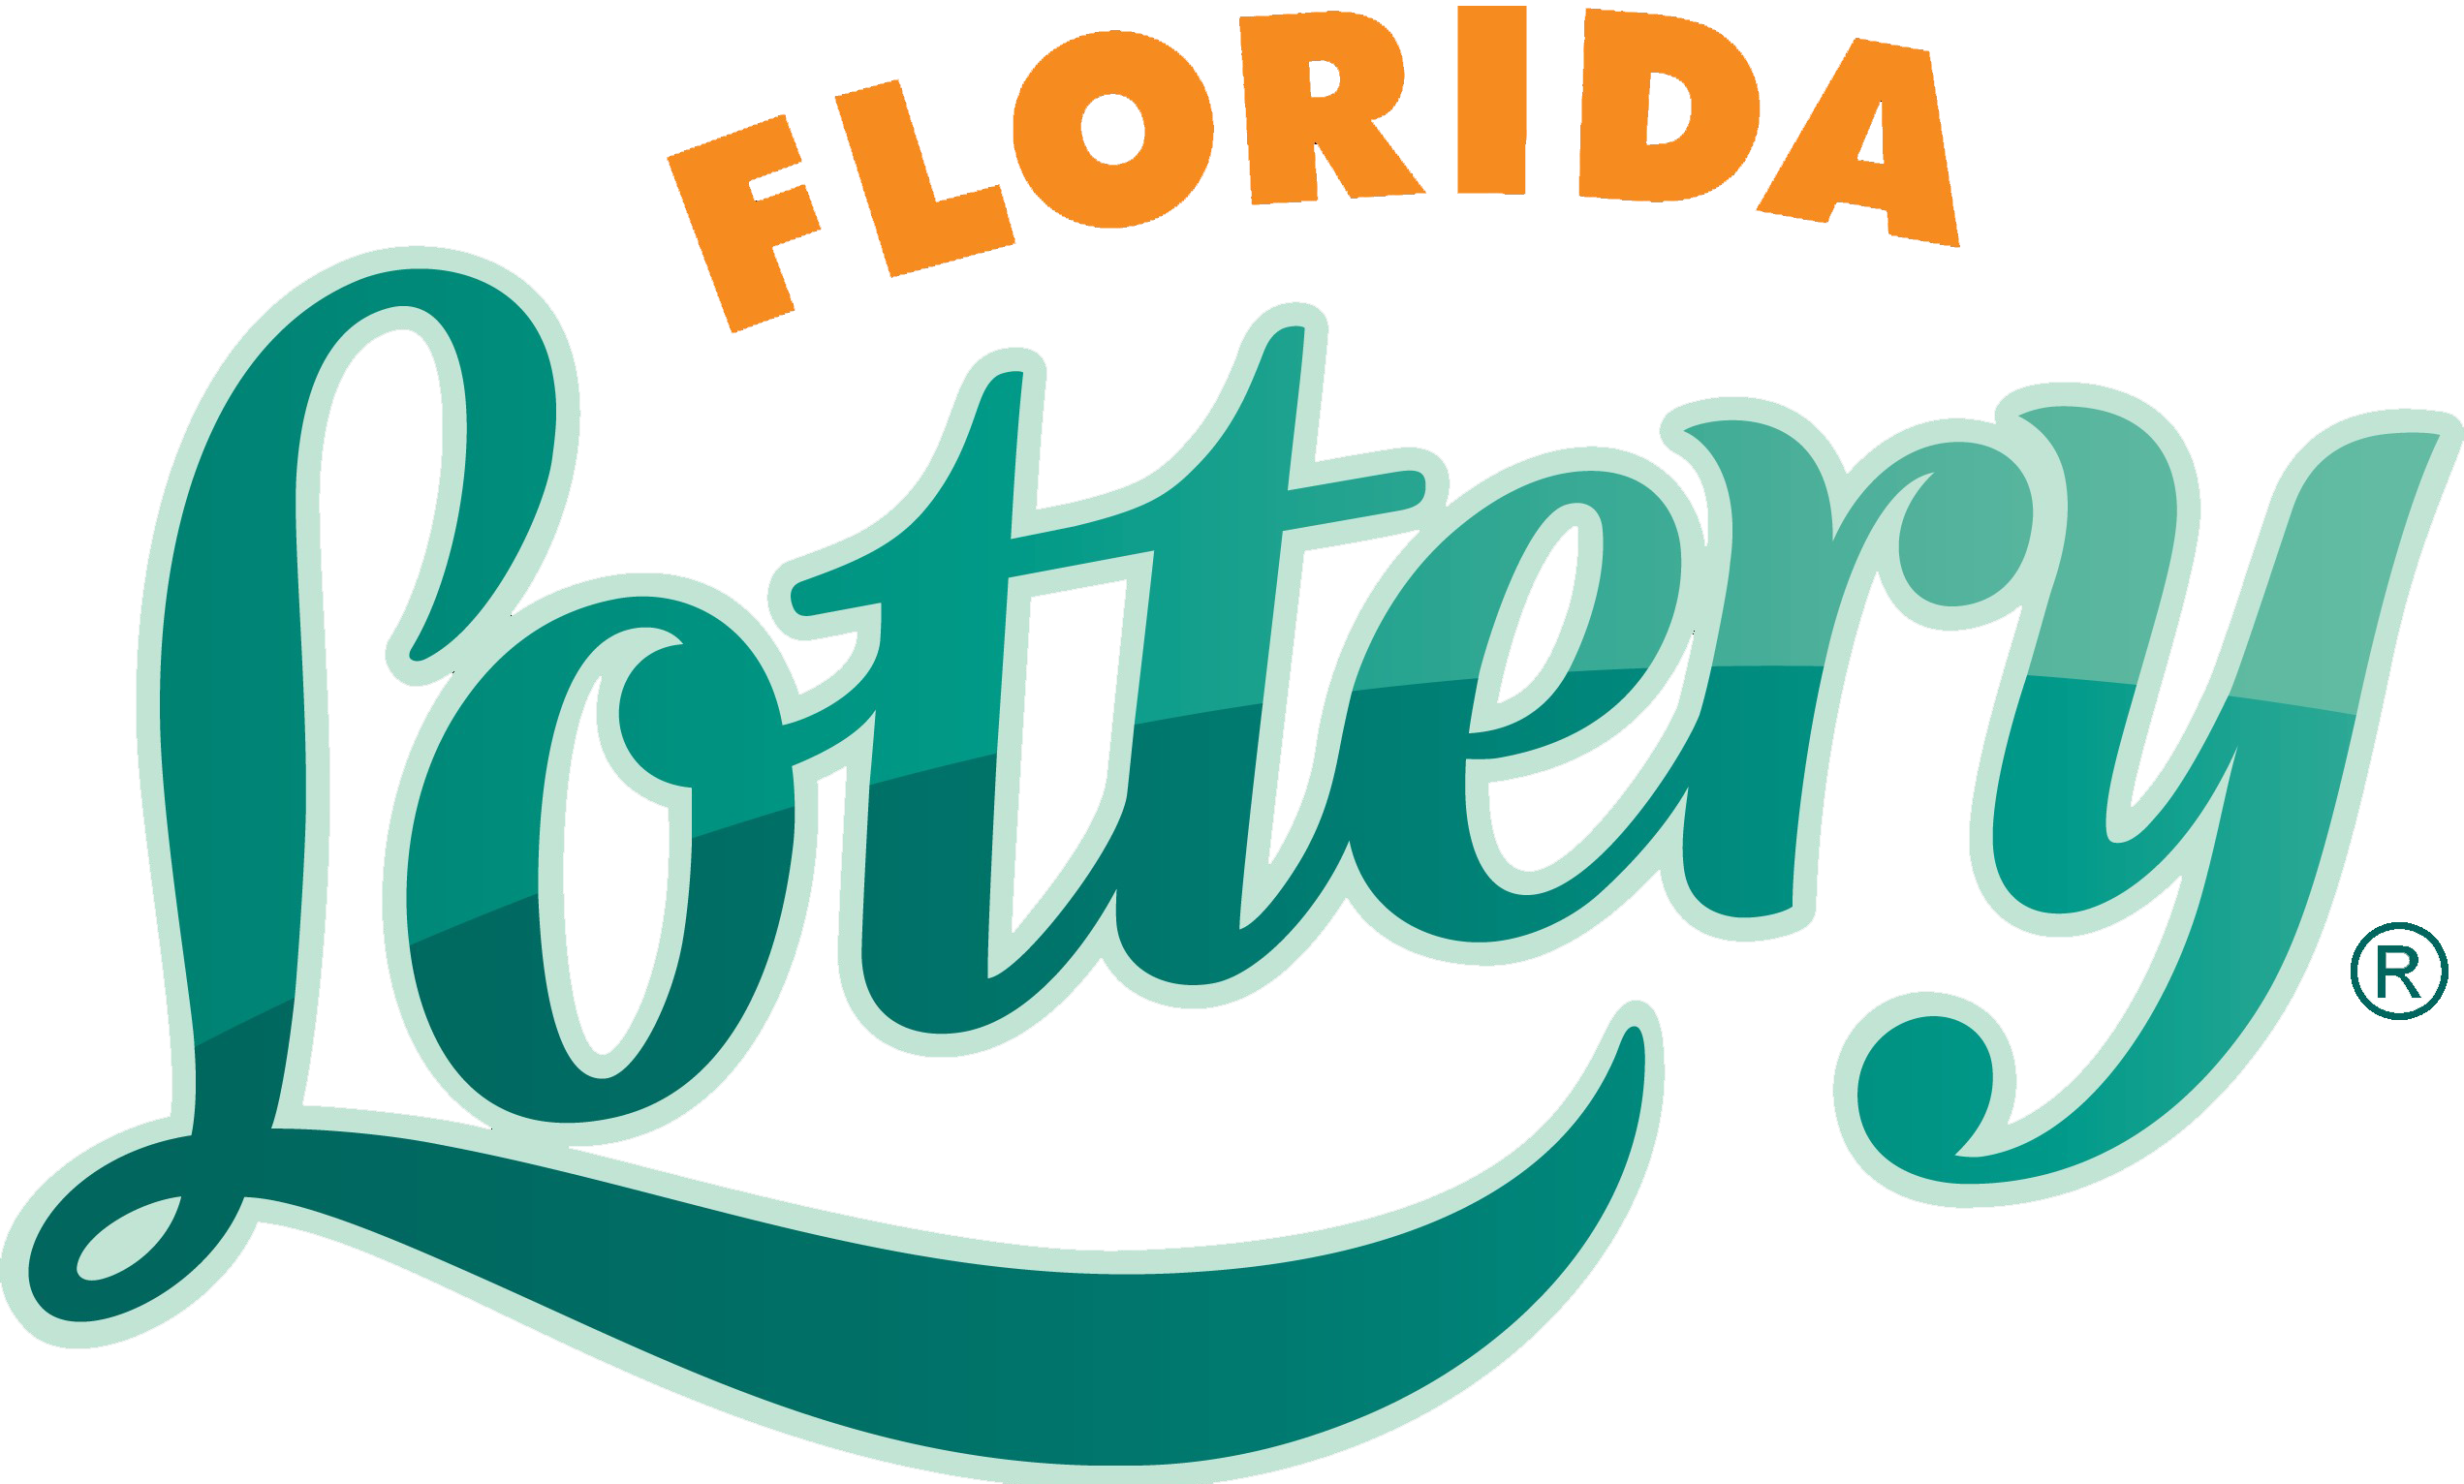 Florida lottery logo png. Blue classic star